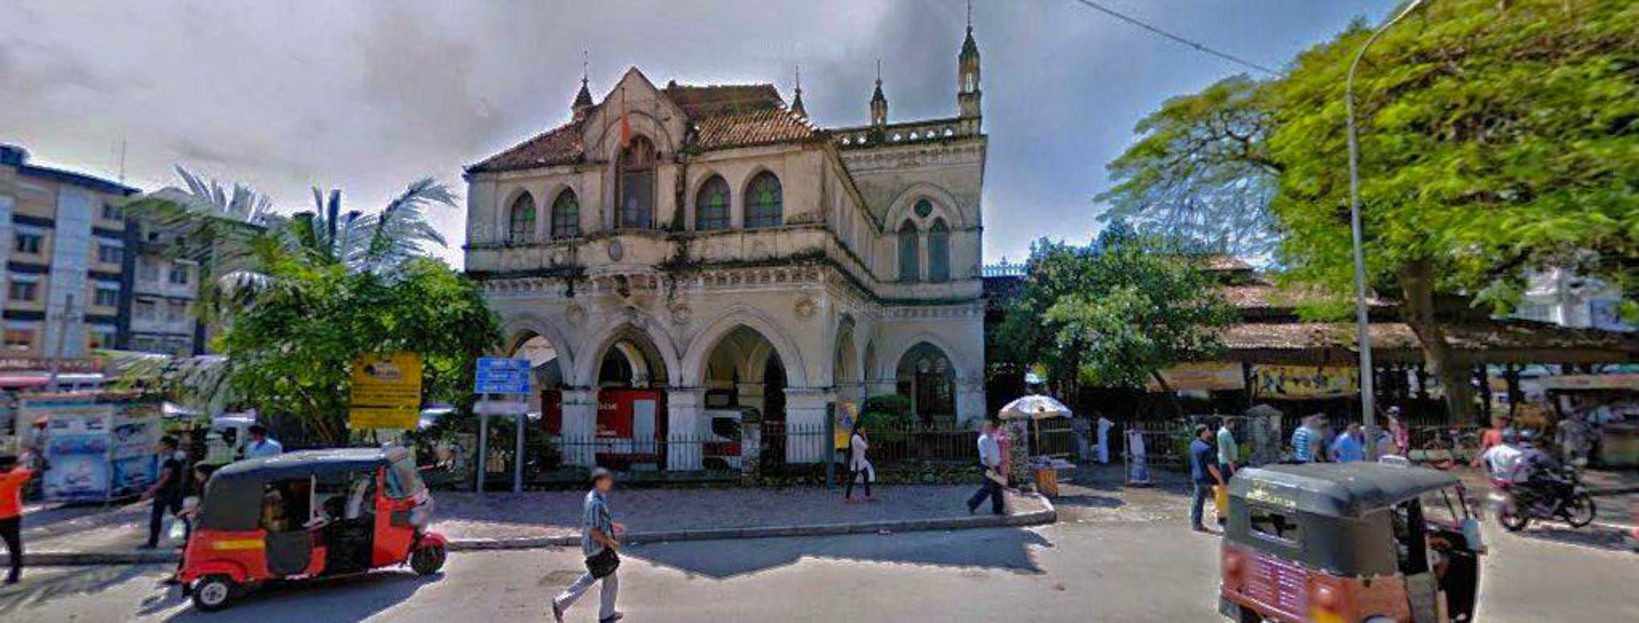 Old Town Hall, Colombo